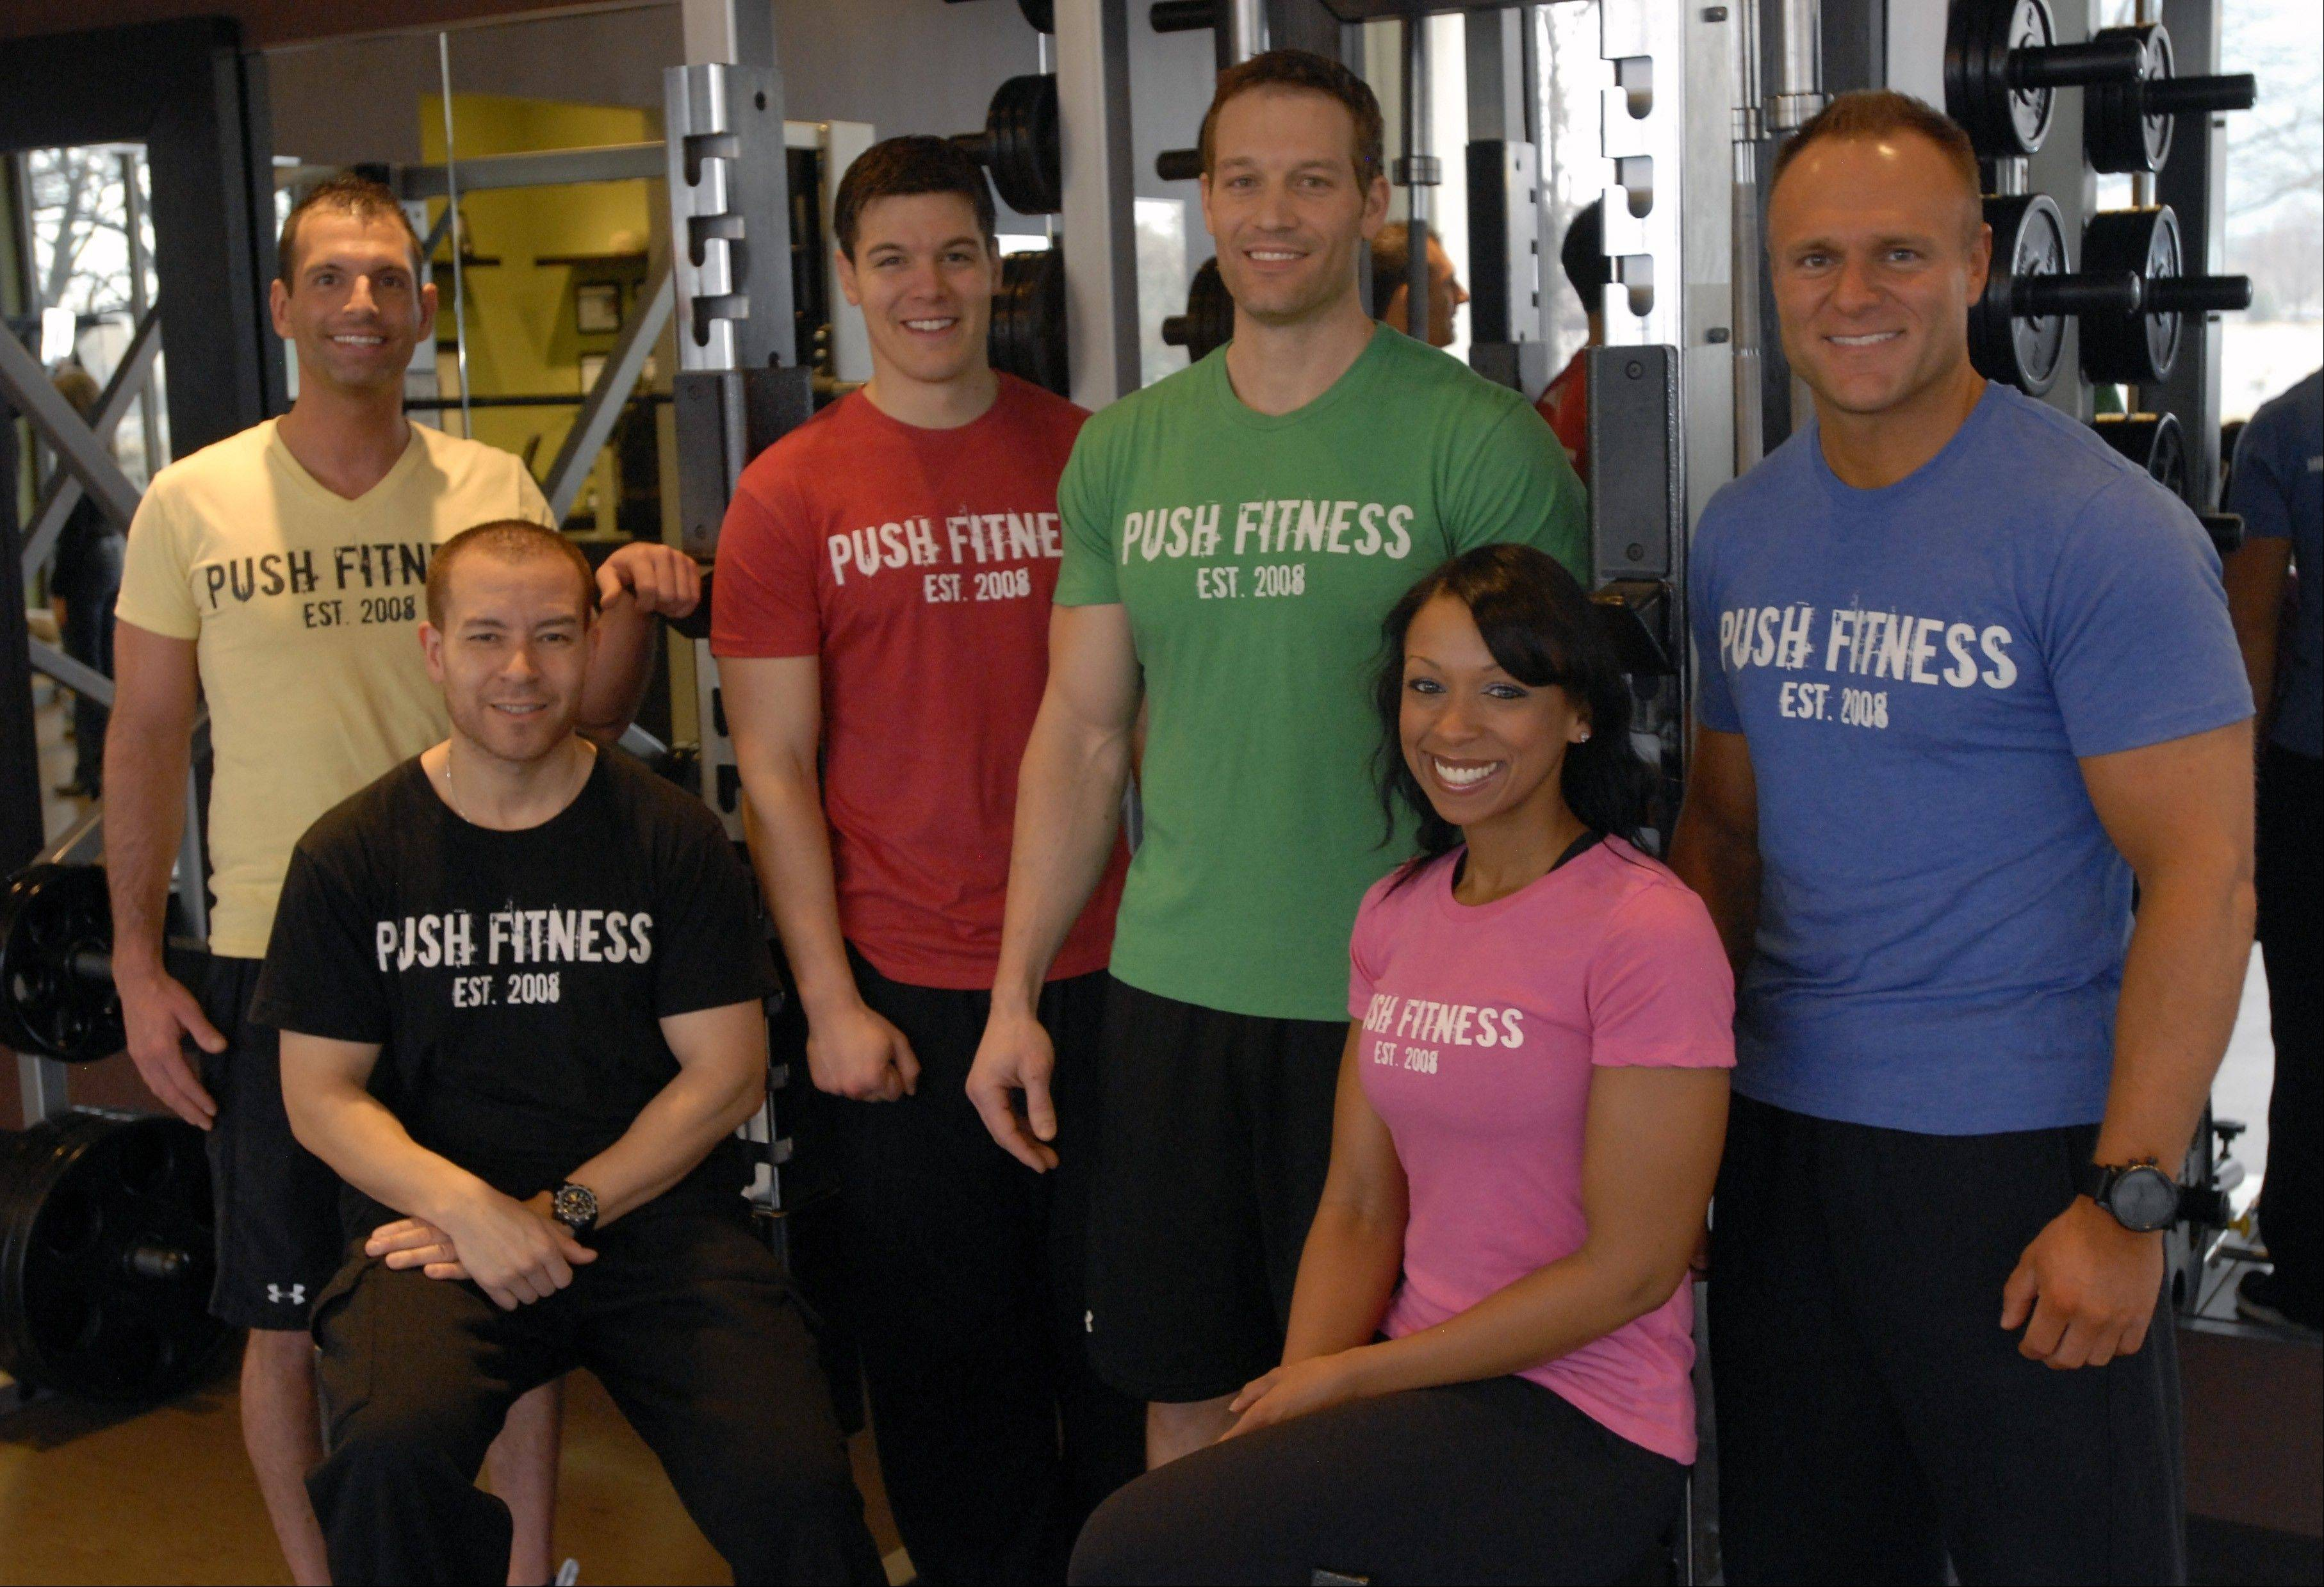 These Push Fitness trainers -- Steve Amsden, left, Tony Figueroa, Wade Merrill, Joshua Steckler, Michelle Amsden and Mark Trapp are responsible for motivating the Fittest Loser contestants all the way through the 12-week competition.